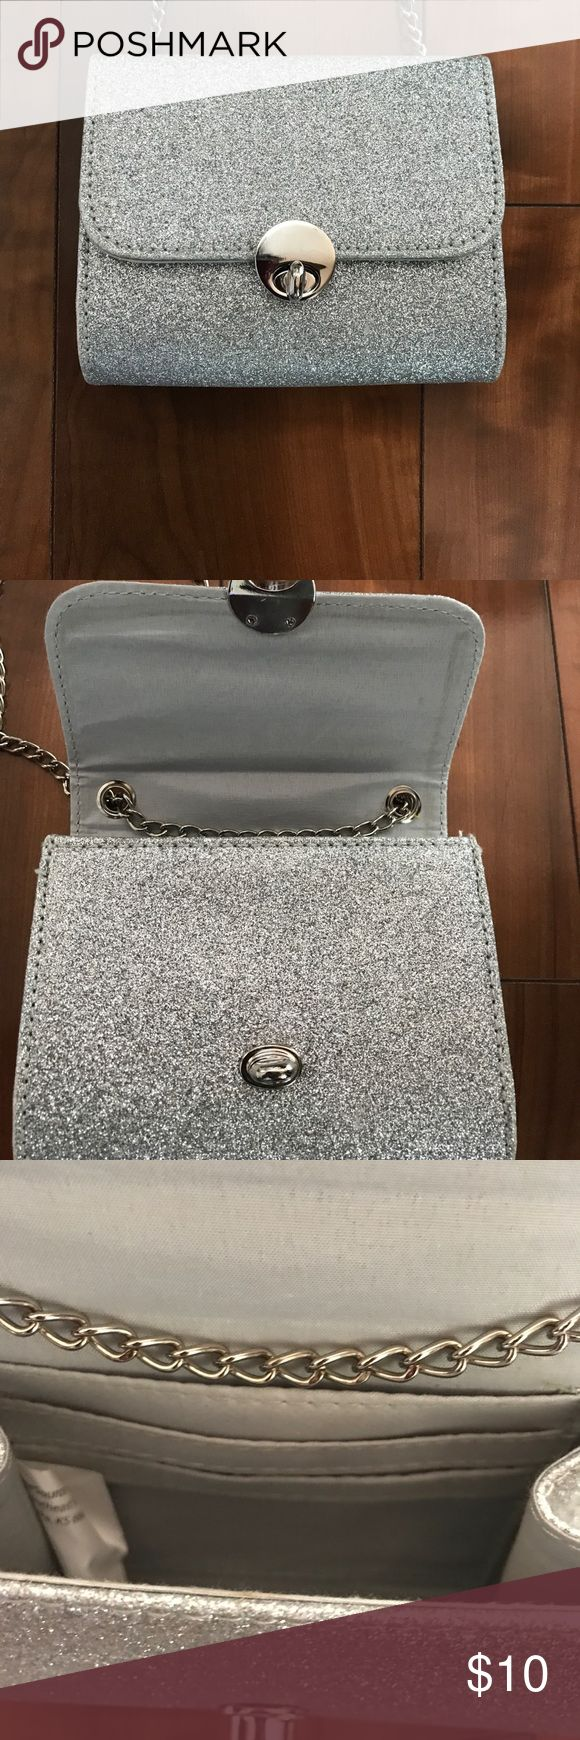 NWOT Shimmery petite crossbody purse 👛🎀💝 NWOT Cute and fun petite purse with silver shimmery exterior.  Chain link strap. Can be worn as crossbody, carried on arm or tuck the strap in and use as clutch. Purchased at Payless Shoe Source. Bags Crossbody Bags